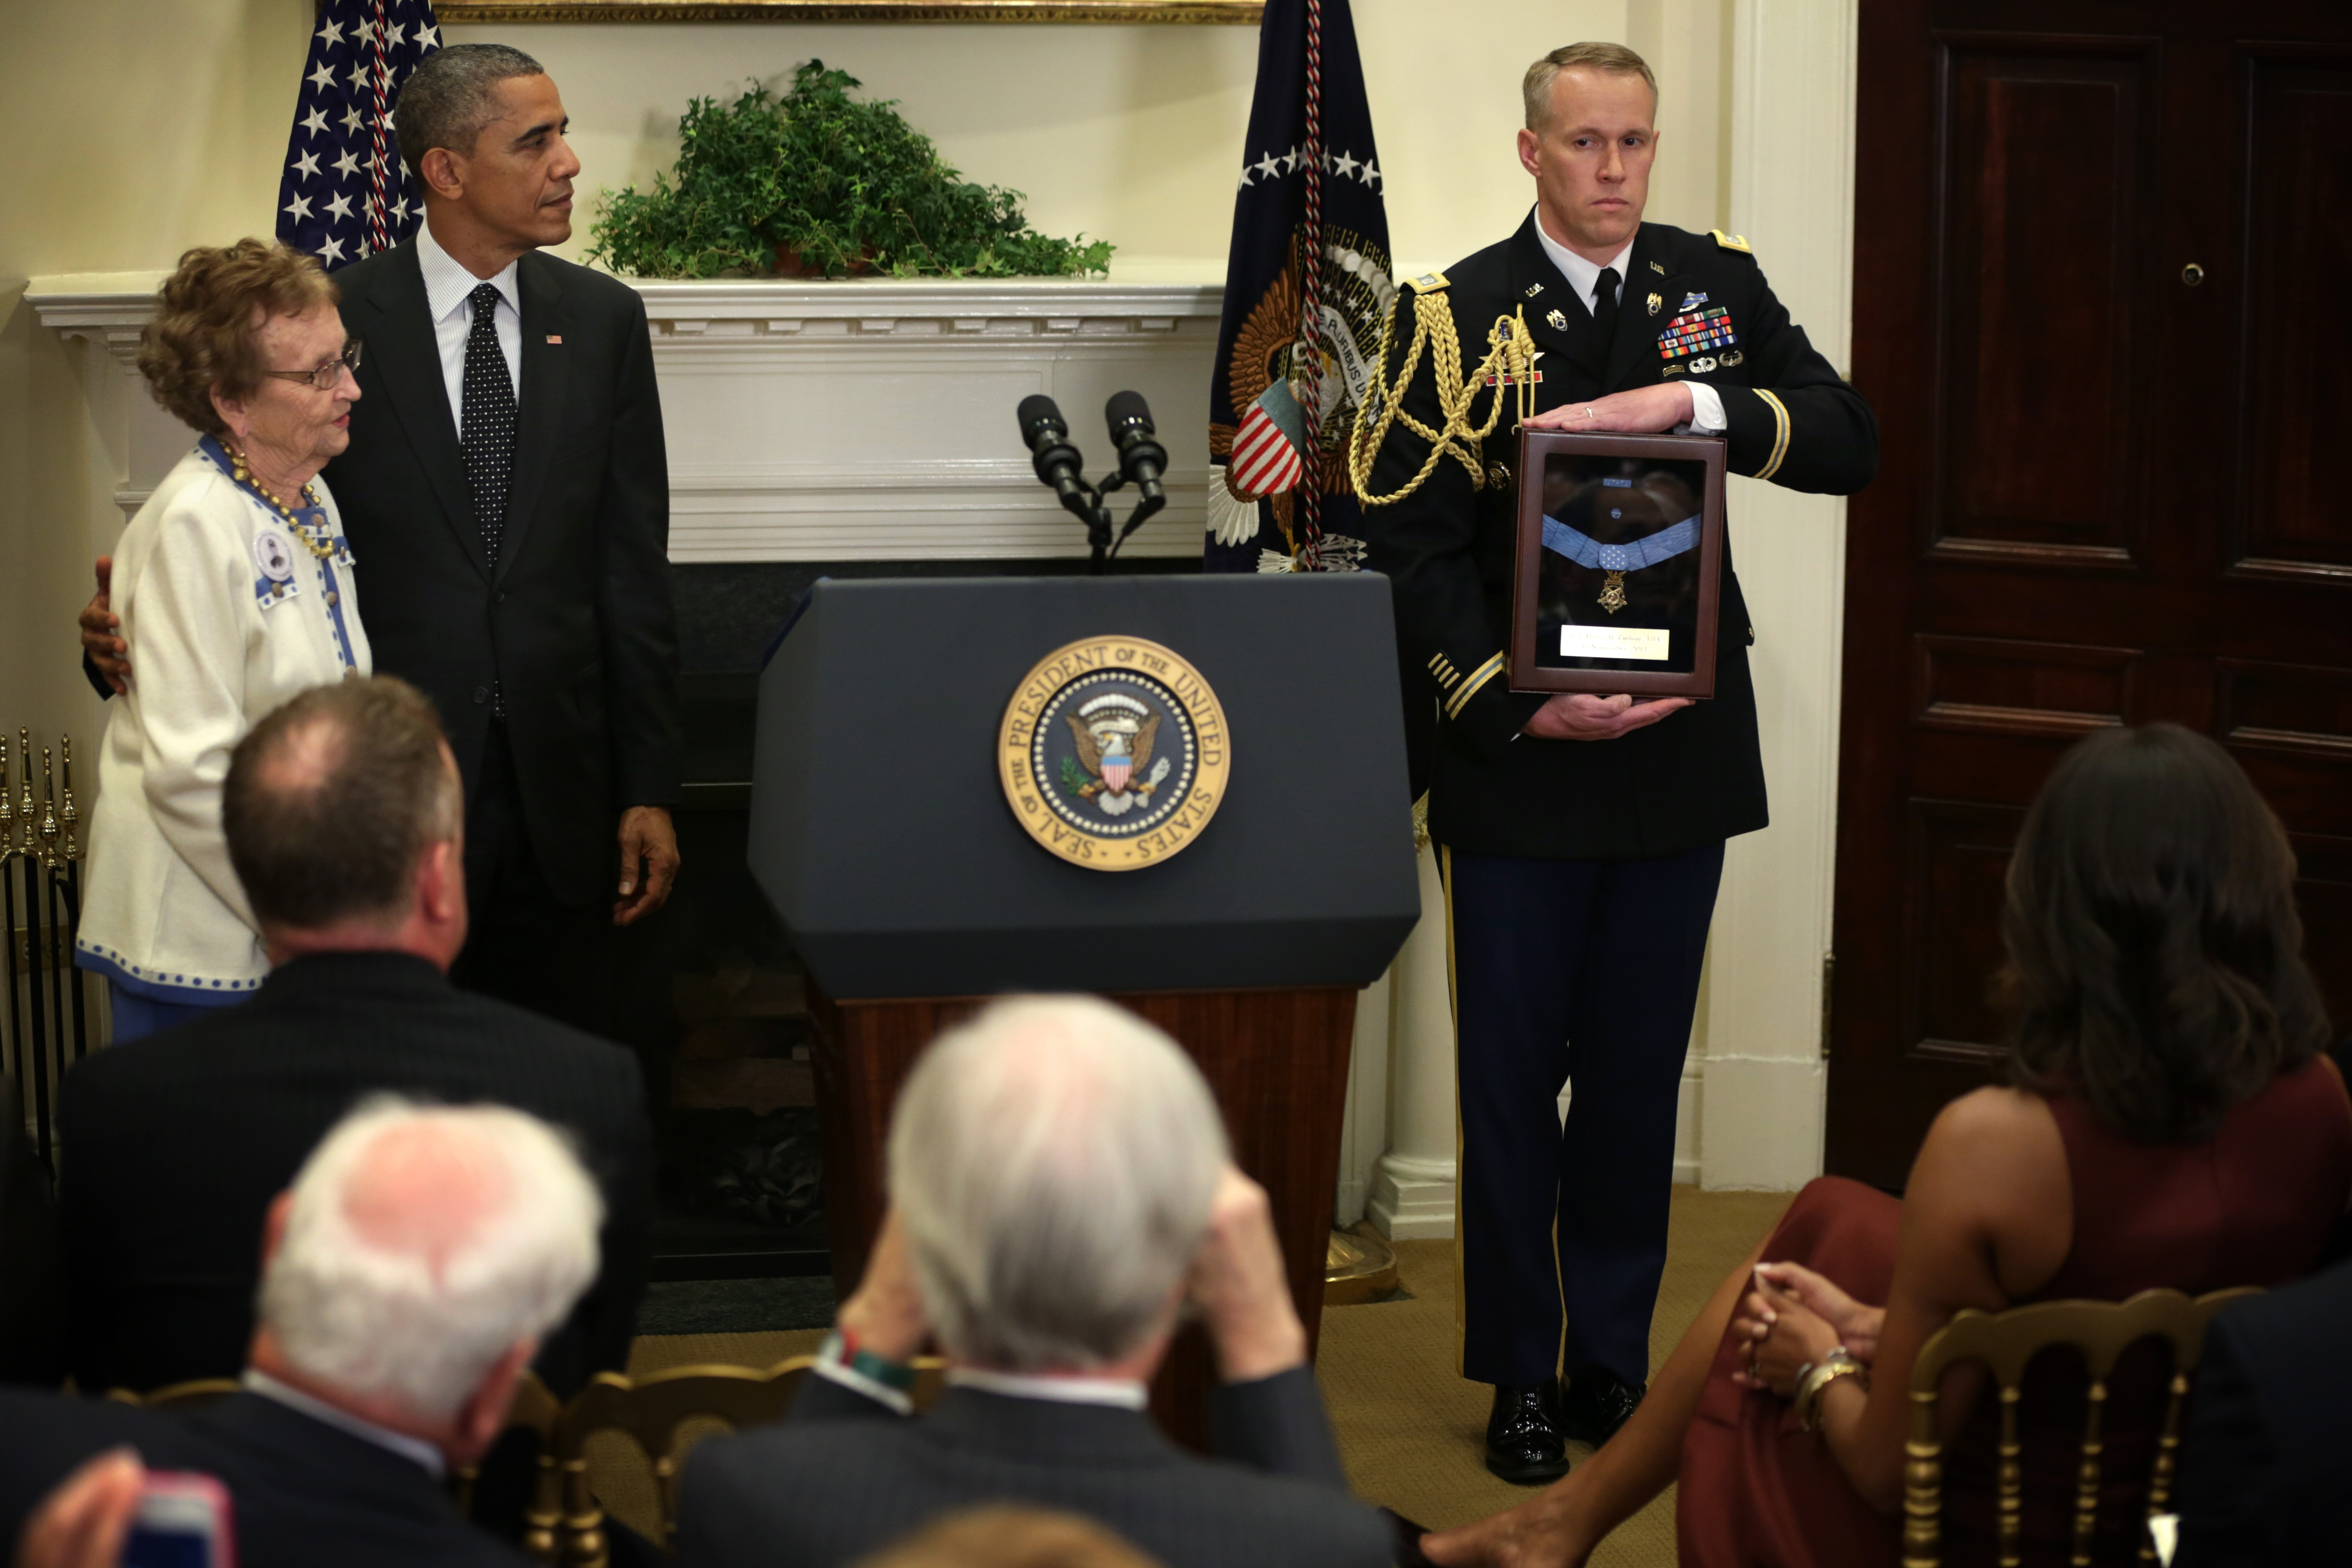 Helen Loring Ensign of Palm Desert, Calif., a descendant of Army 1st Lt. Alonzo H. Cushing, stood next to President Obama as she prepared to receive the Medal of Honor that was bestowed on Cushing at the White House last year, 152 years after his death in the Civil War.